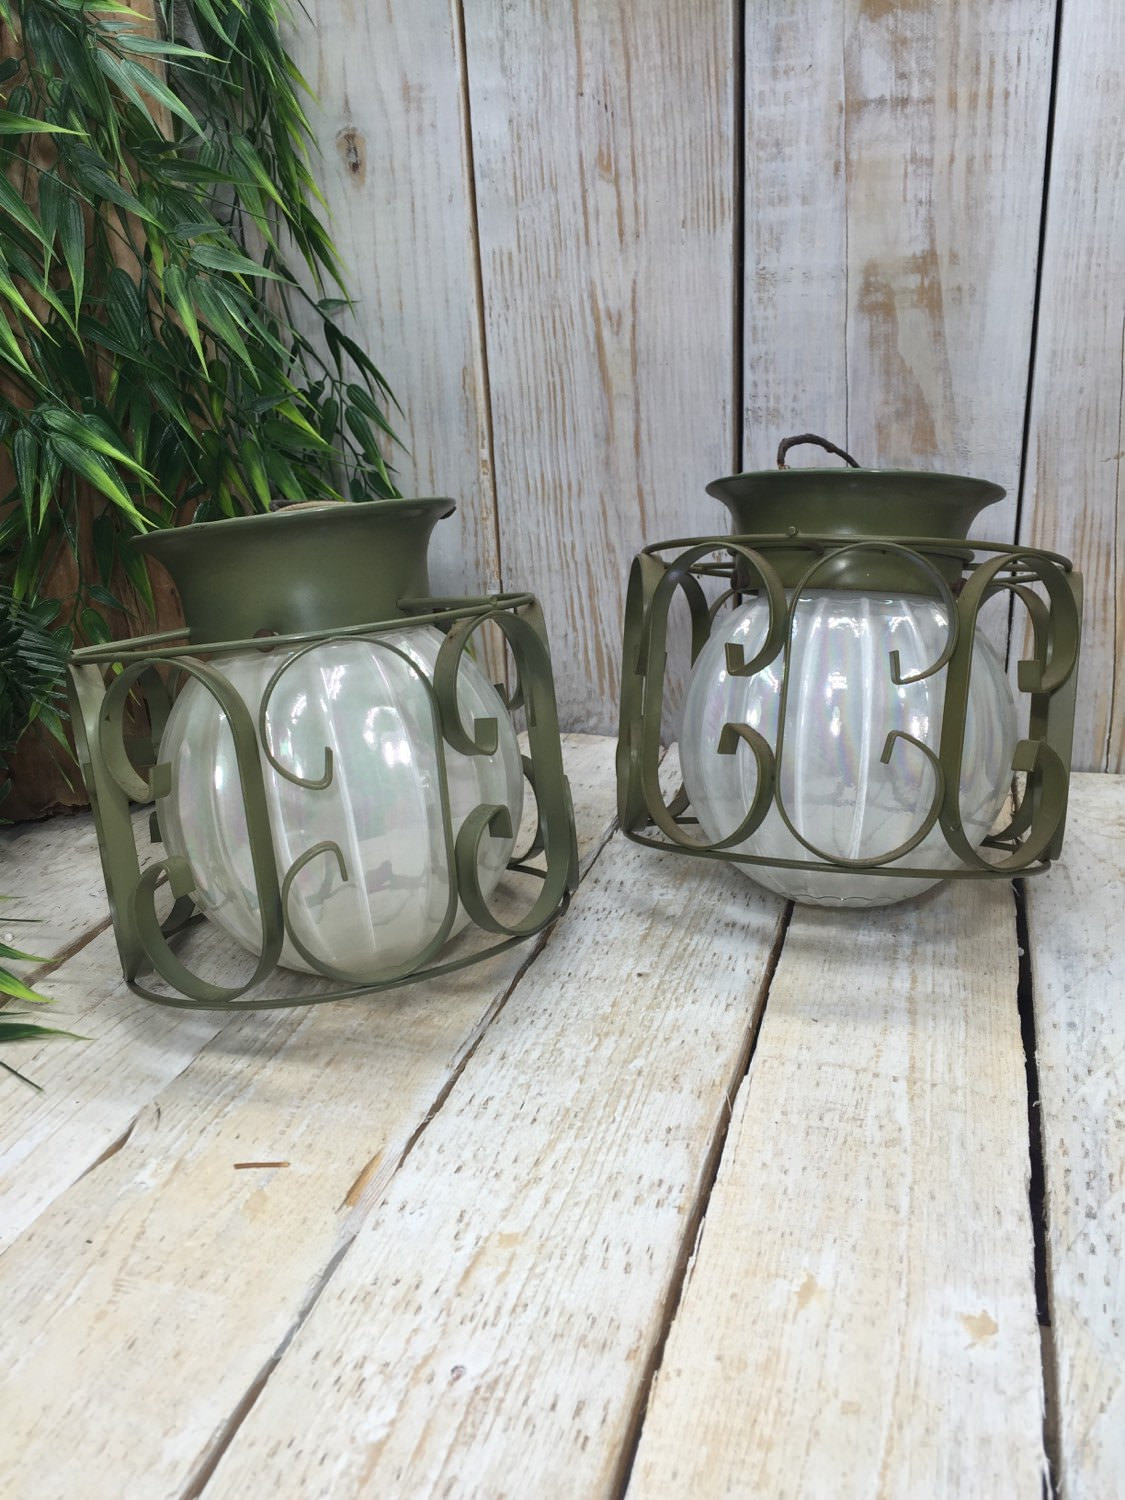 Vintage Outdoor Lighting Fixture - outdoor-lighting